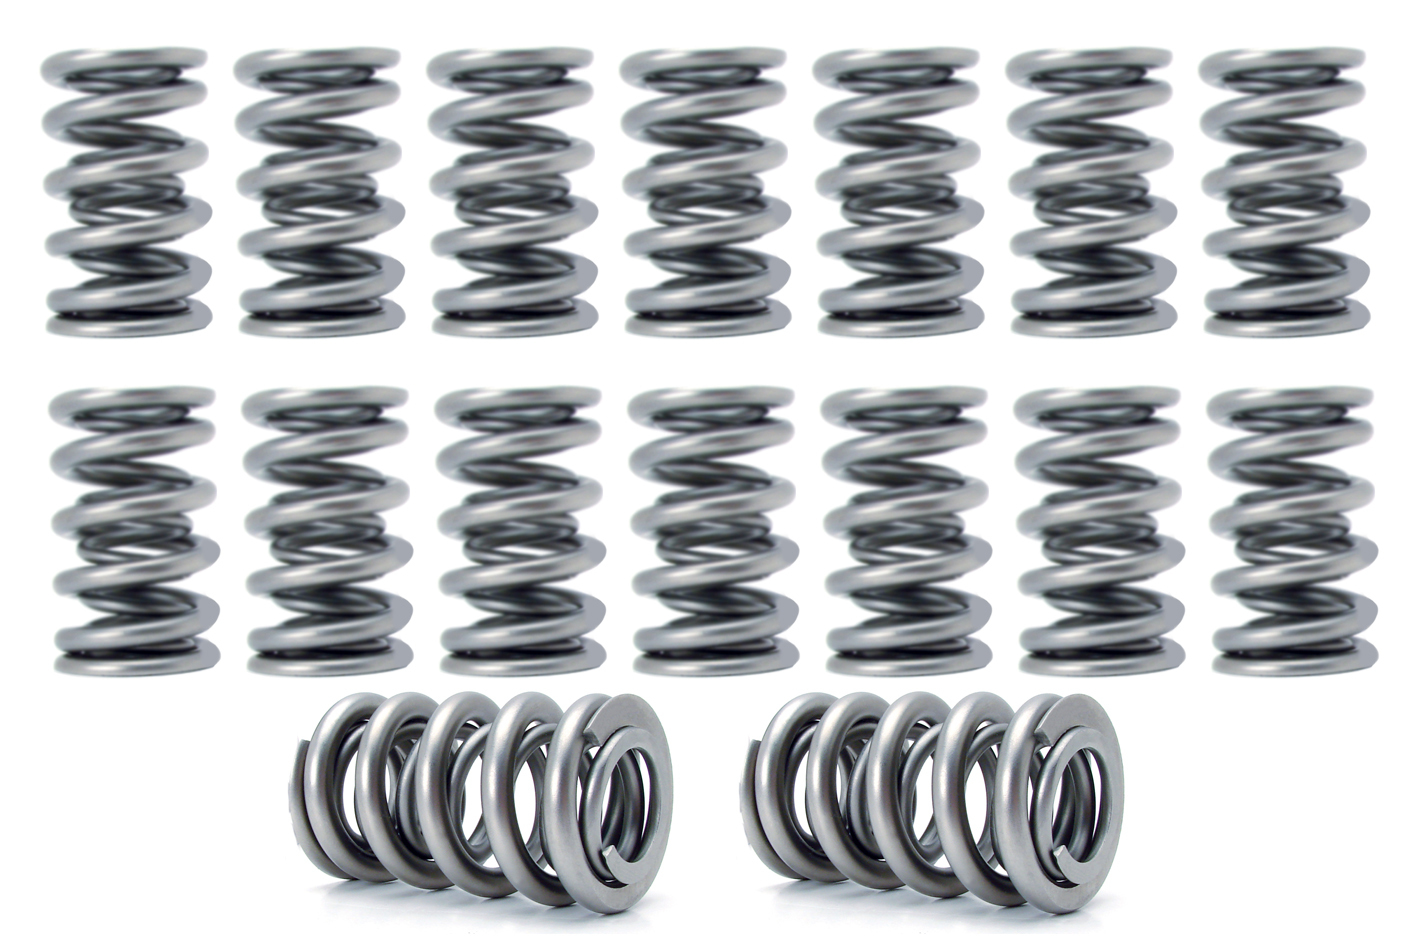 Comp Cams 26527-16 Valve Spring, Dual Spring, 427 lb/in Spring Rate, 1.15 in Coil Bind, 1.301 in OD, Set of 16